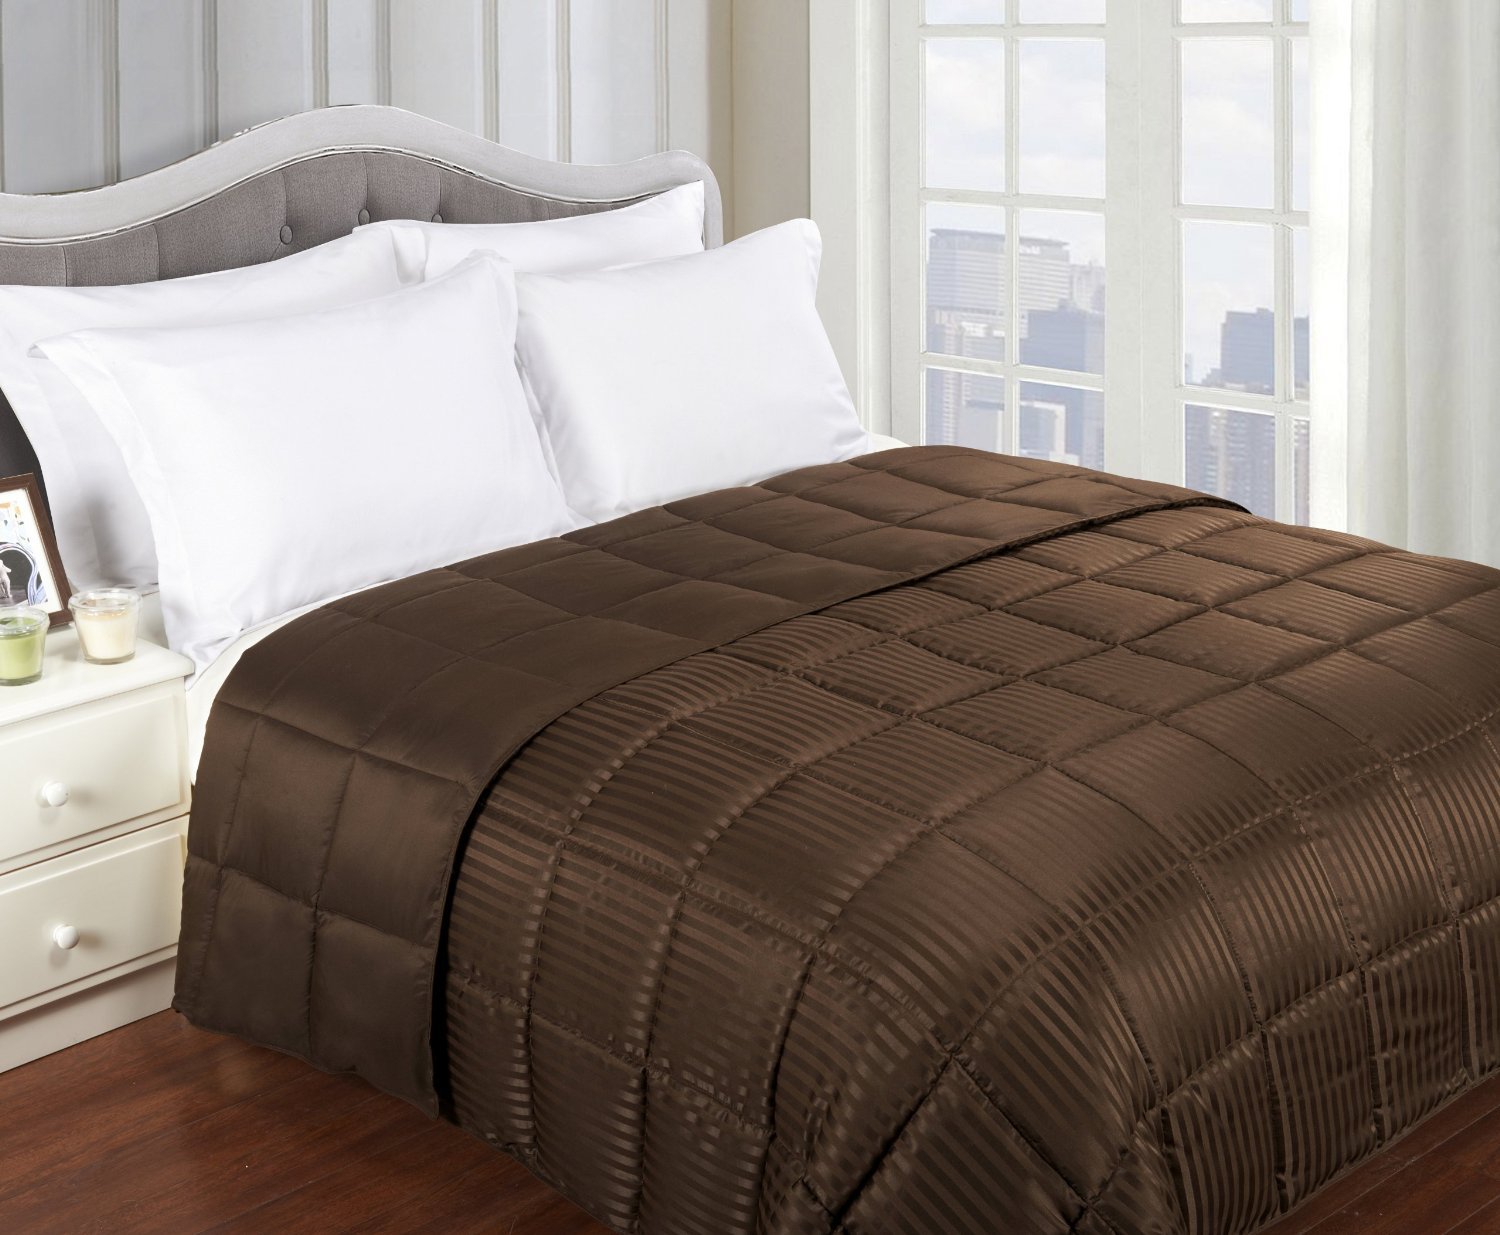 GoLinens: All-season Luxurious Down Alternative Reversible Blanket With Box Sewn Construction